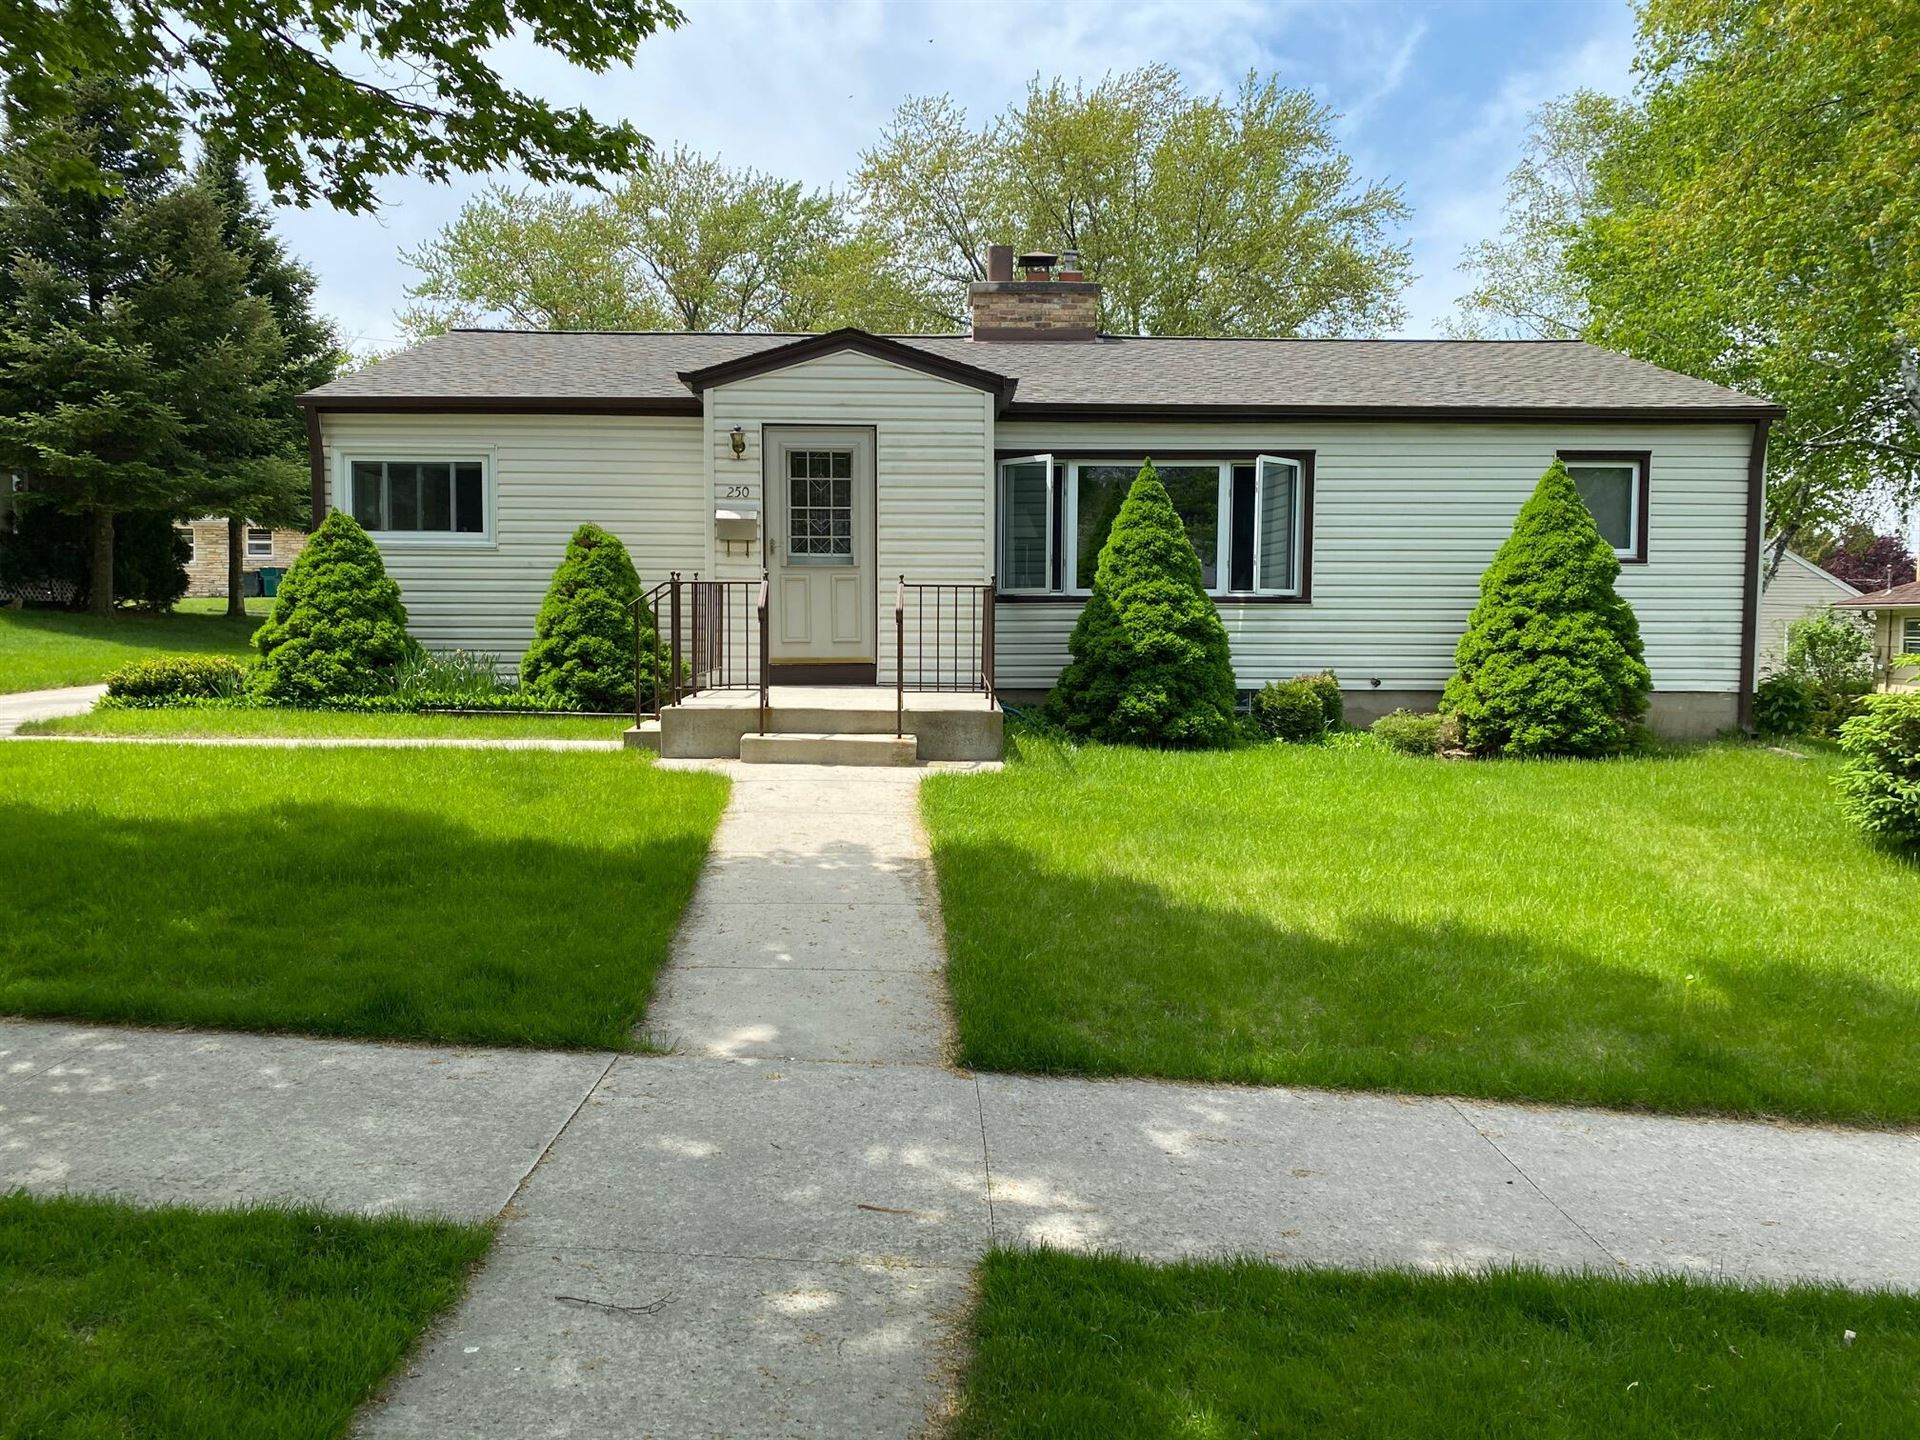 250 S Silverbrook Dr, West Bend, WI 53095 - MLS#: 1748673